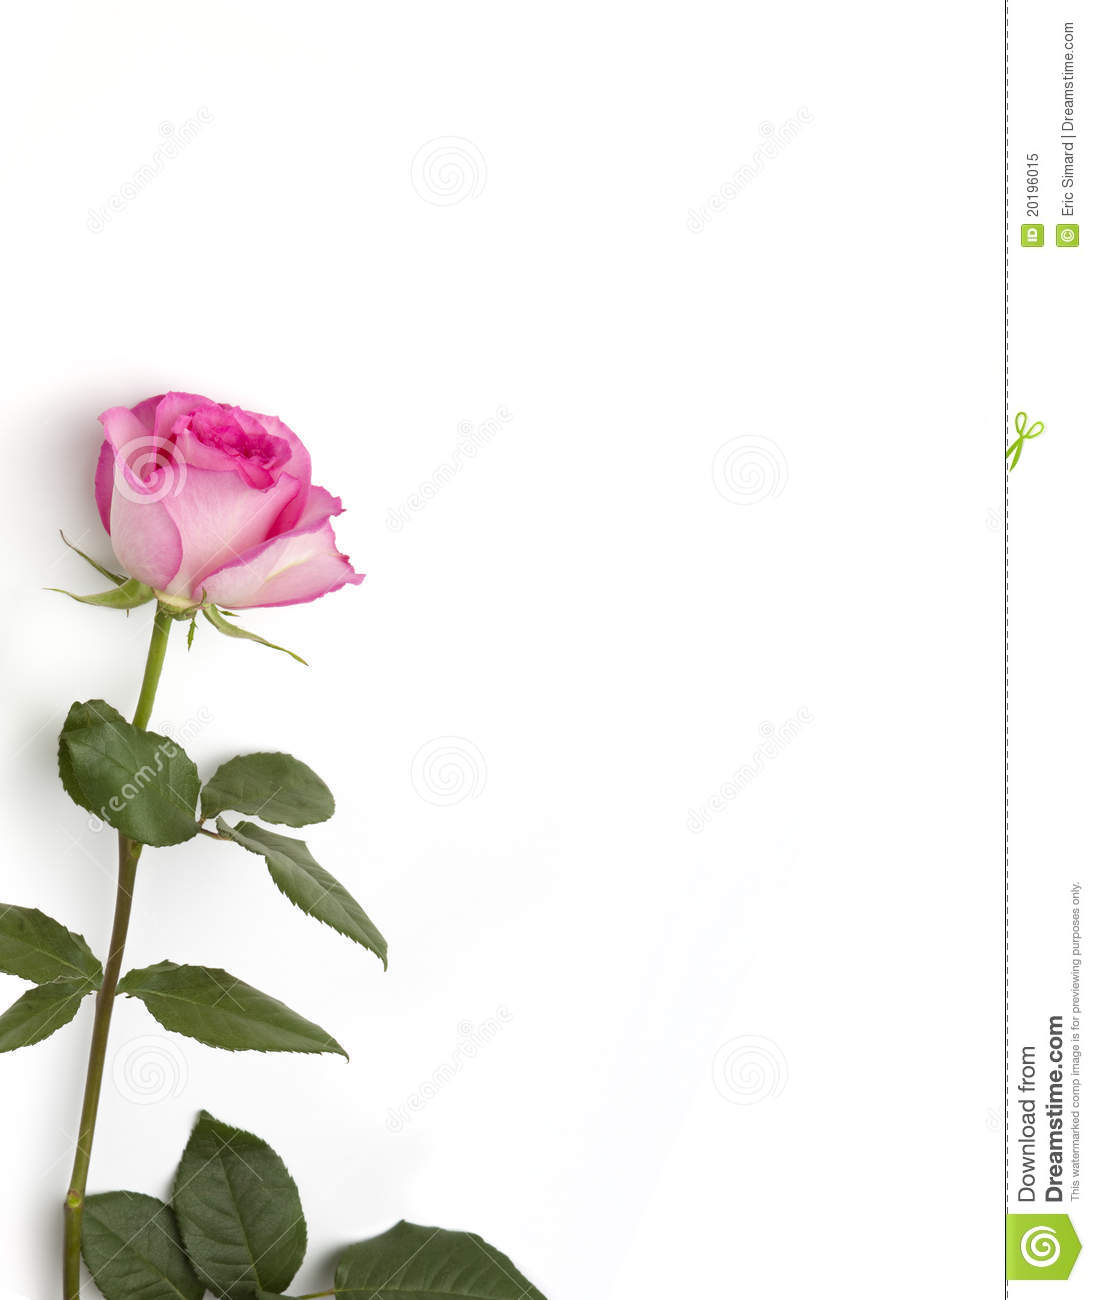 Pink Rose Stationary Royalty Free Stock Photo - Image: 20196015